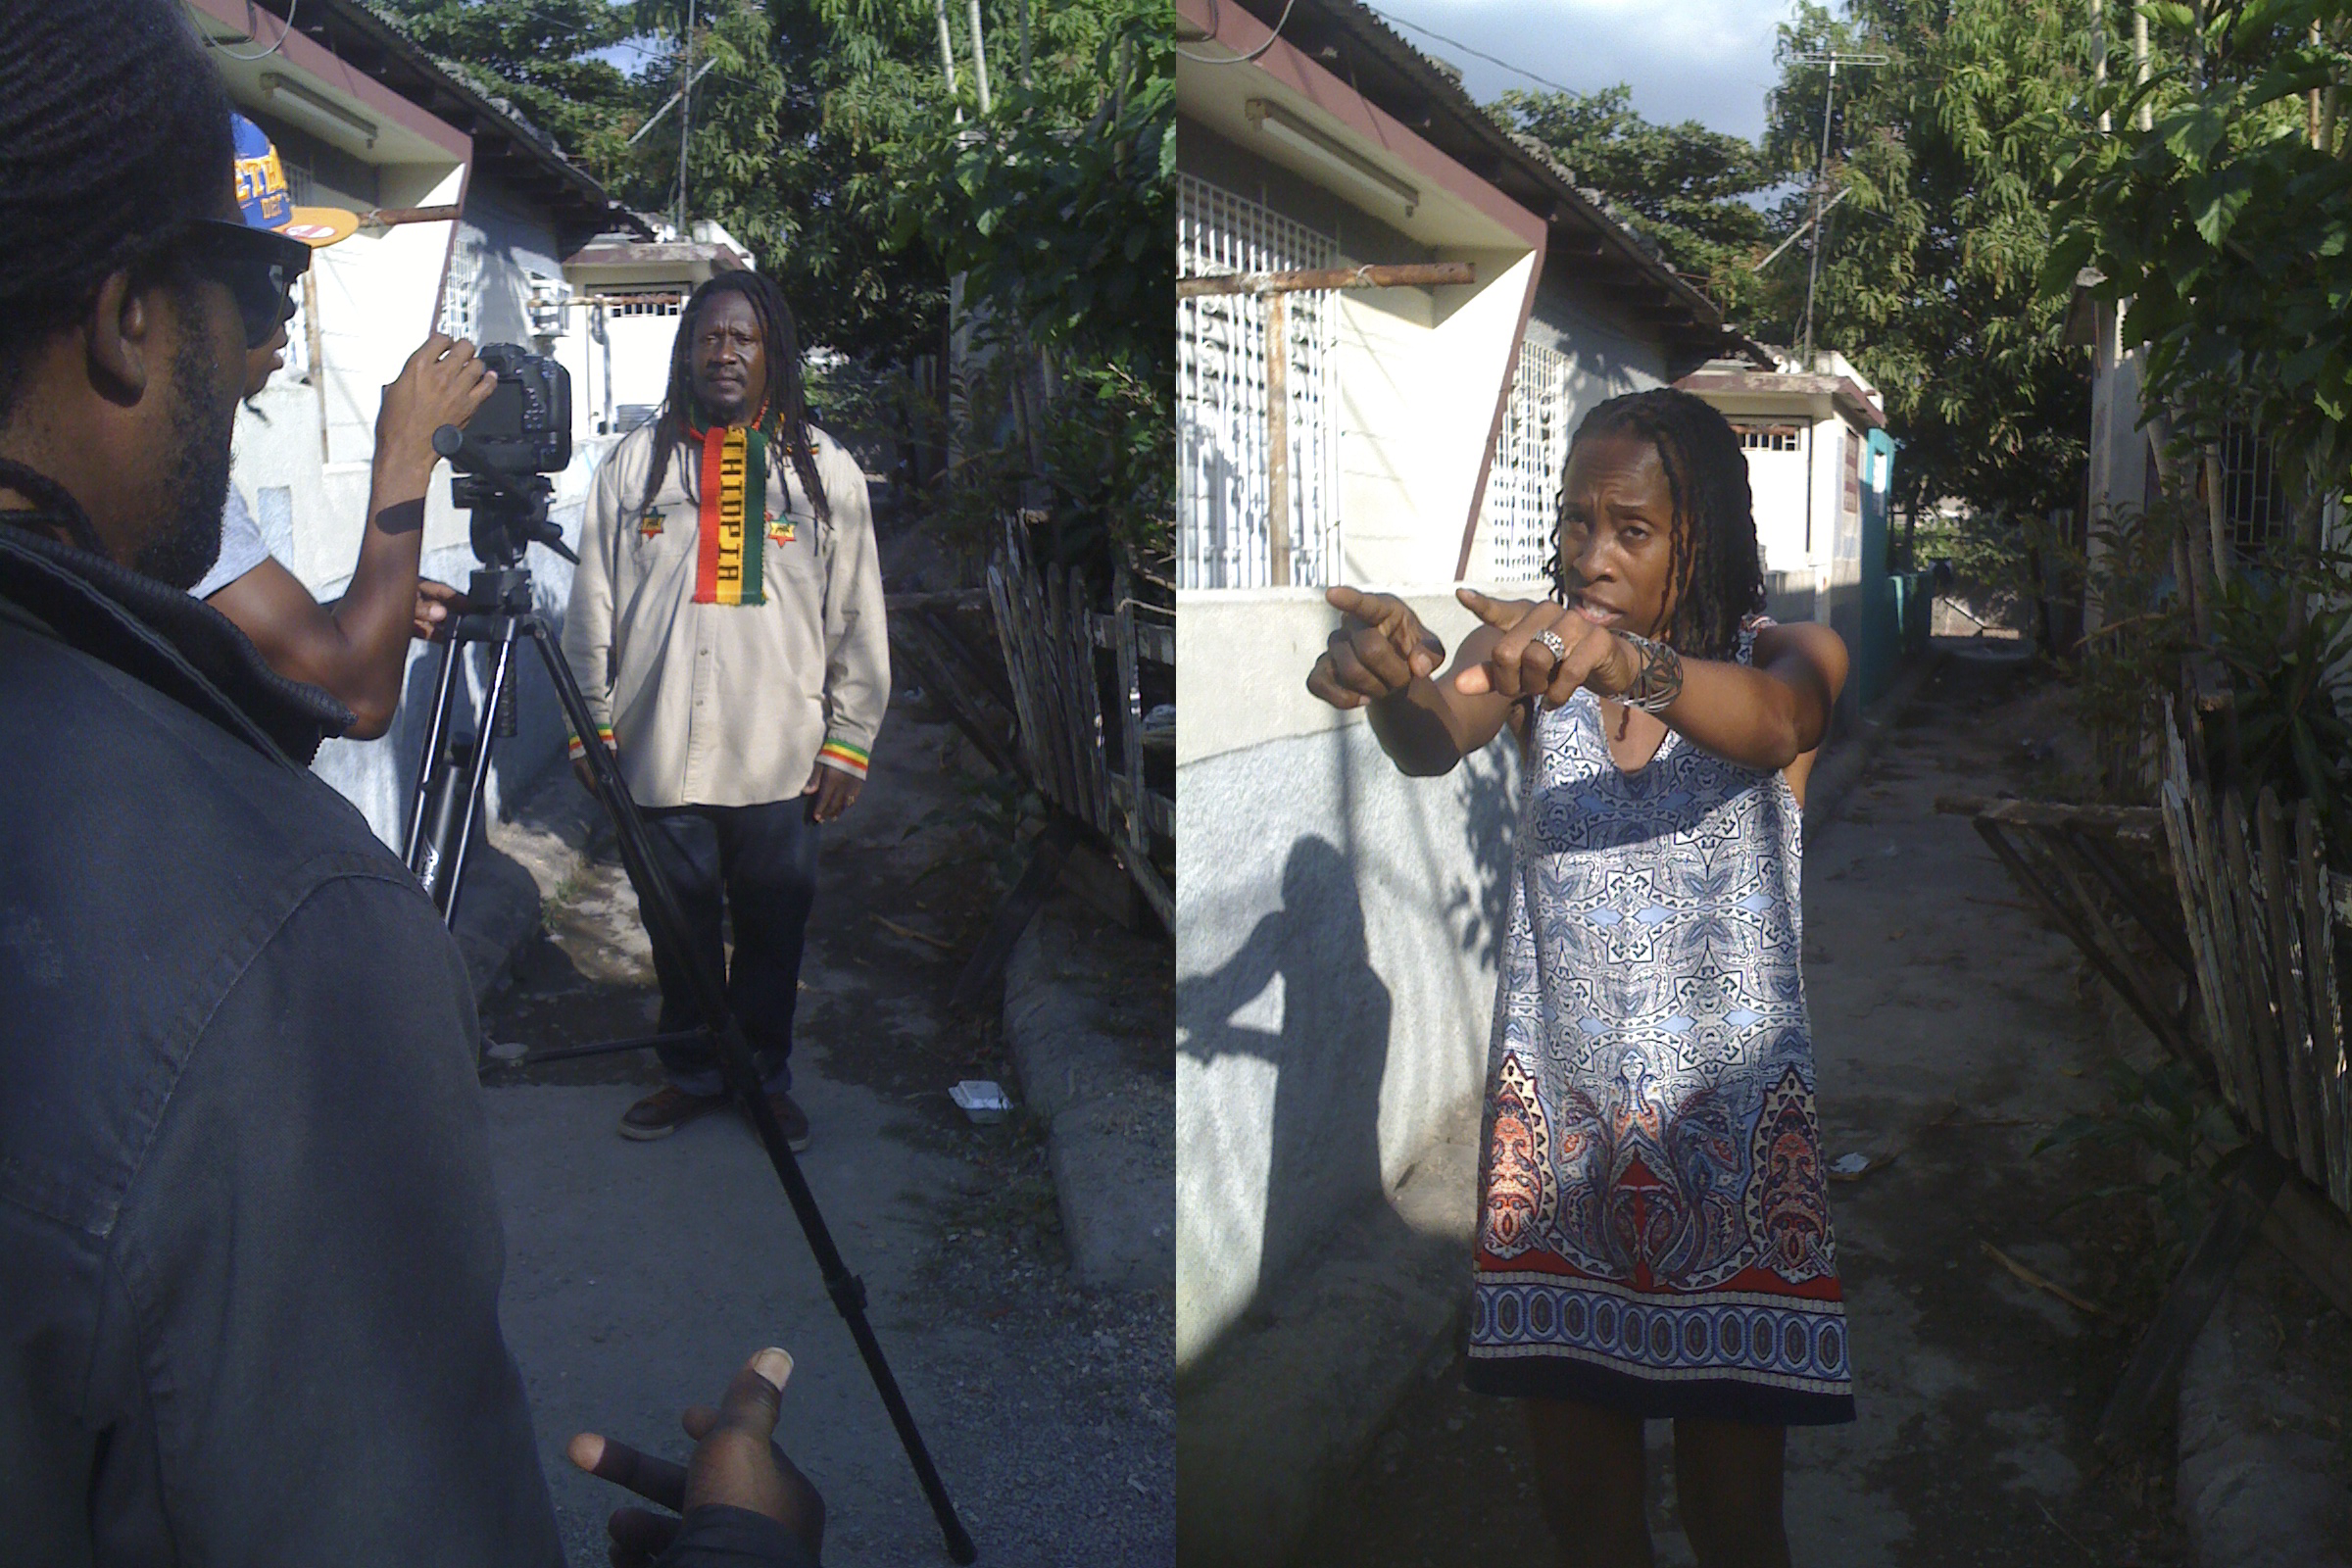 Artist Karamanti and Mikey General filming their new music video